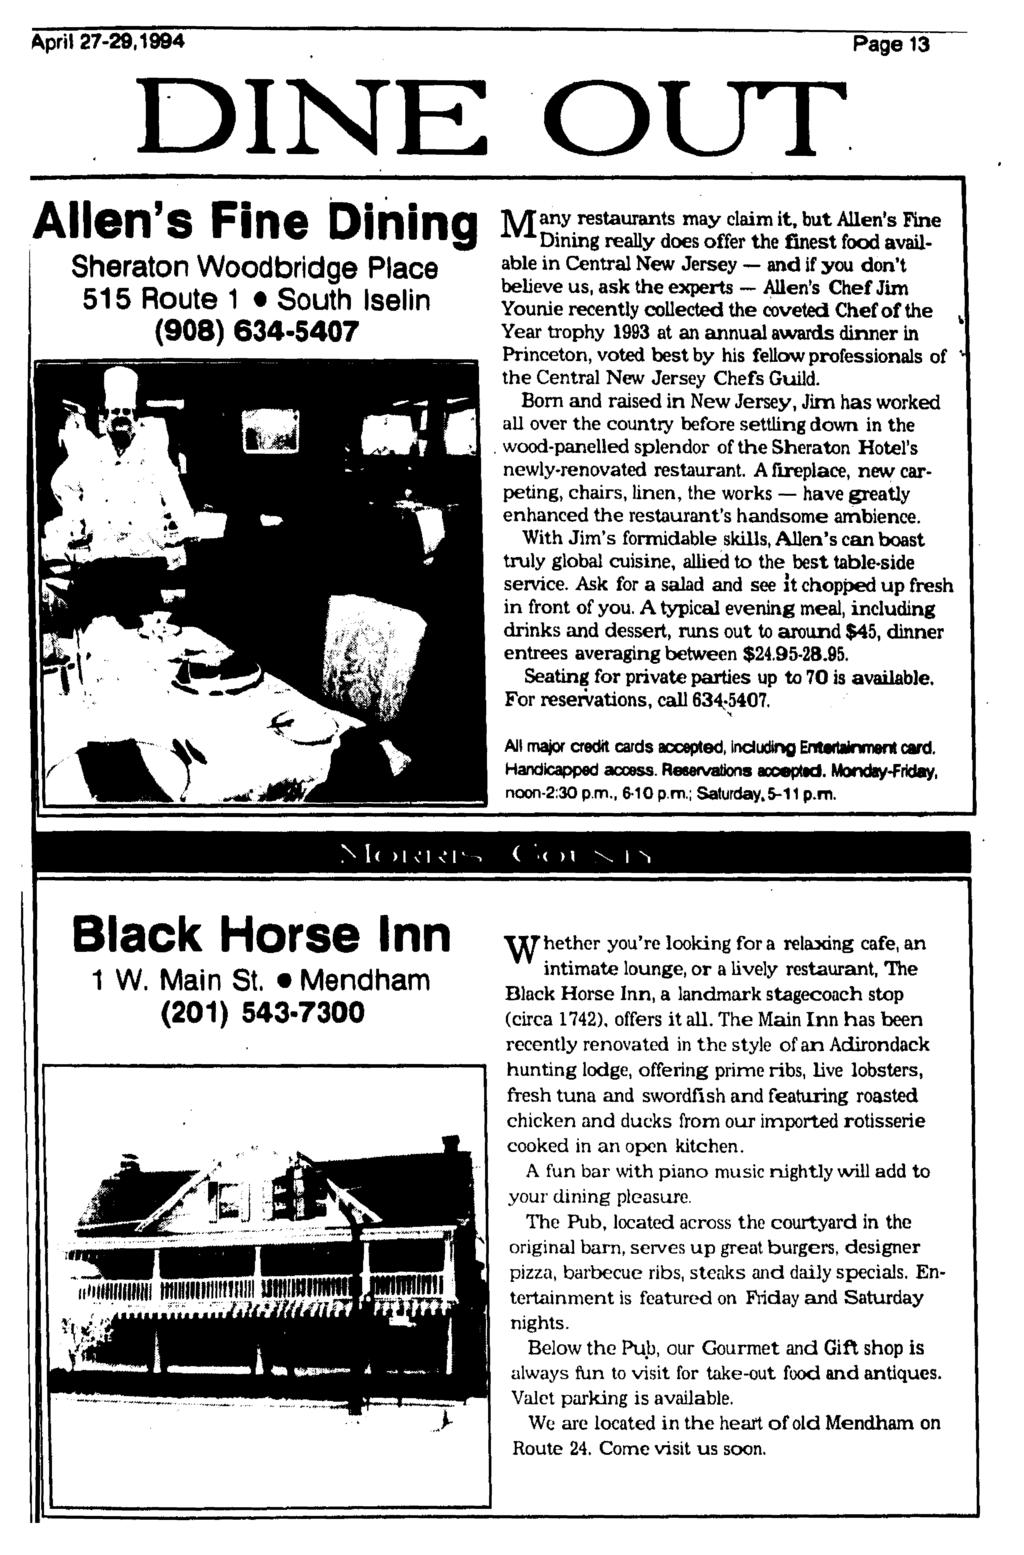 April 27-20,1994 Page 13 DINE Allen's Fine Dining Sheraton Woodbridge Place 515 Route 1 South Iselin (908) 634-5407 OUT TWTany restaurants may claim it, but Allen's Fine Dining really does offer the